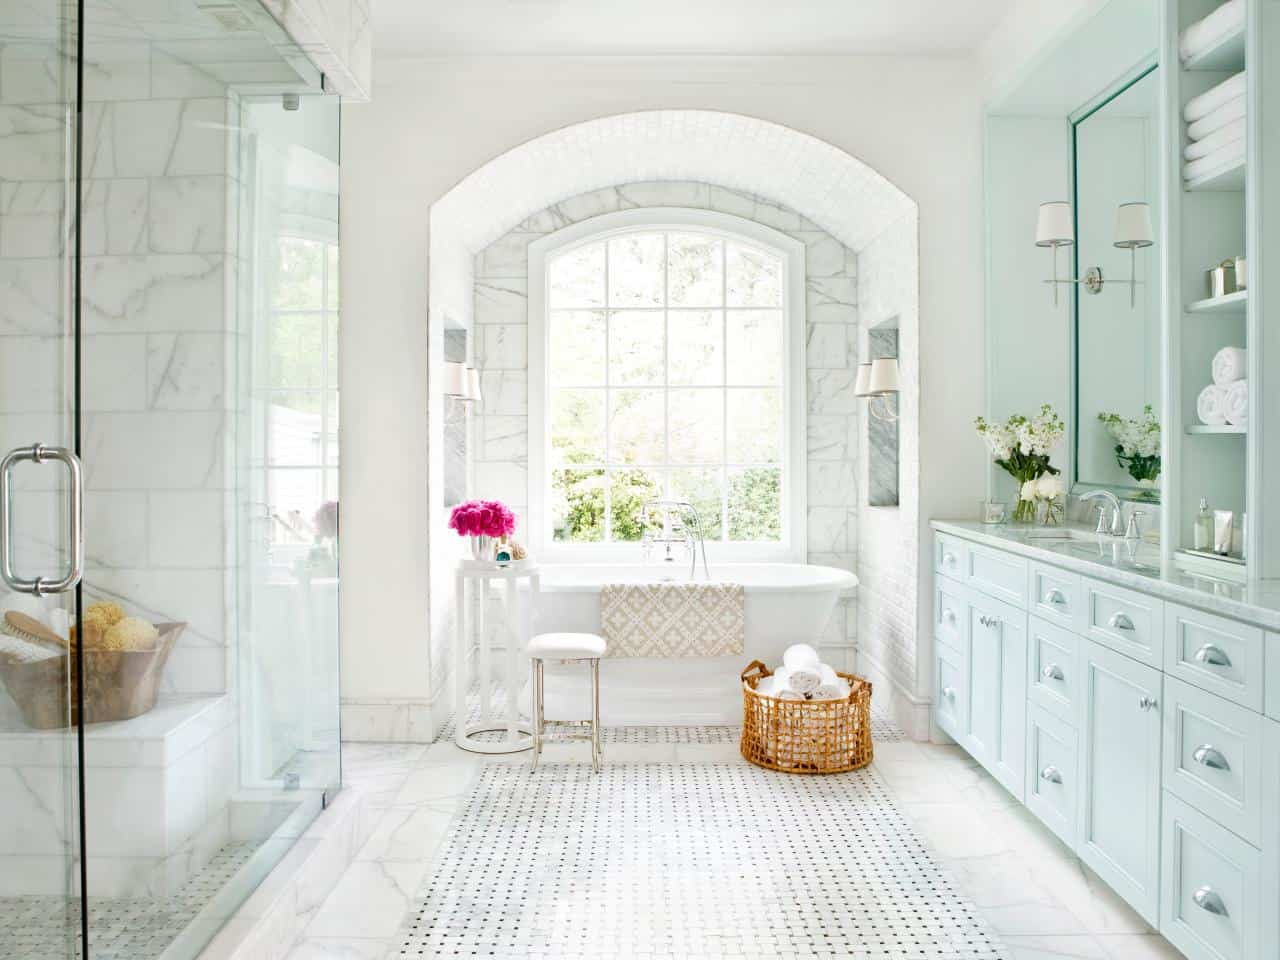 White Bathroom Designs That Will Inspire Your Next Renovations on Beautiful Bathroom Ideas  id=95003